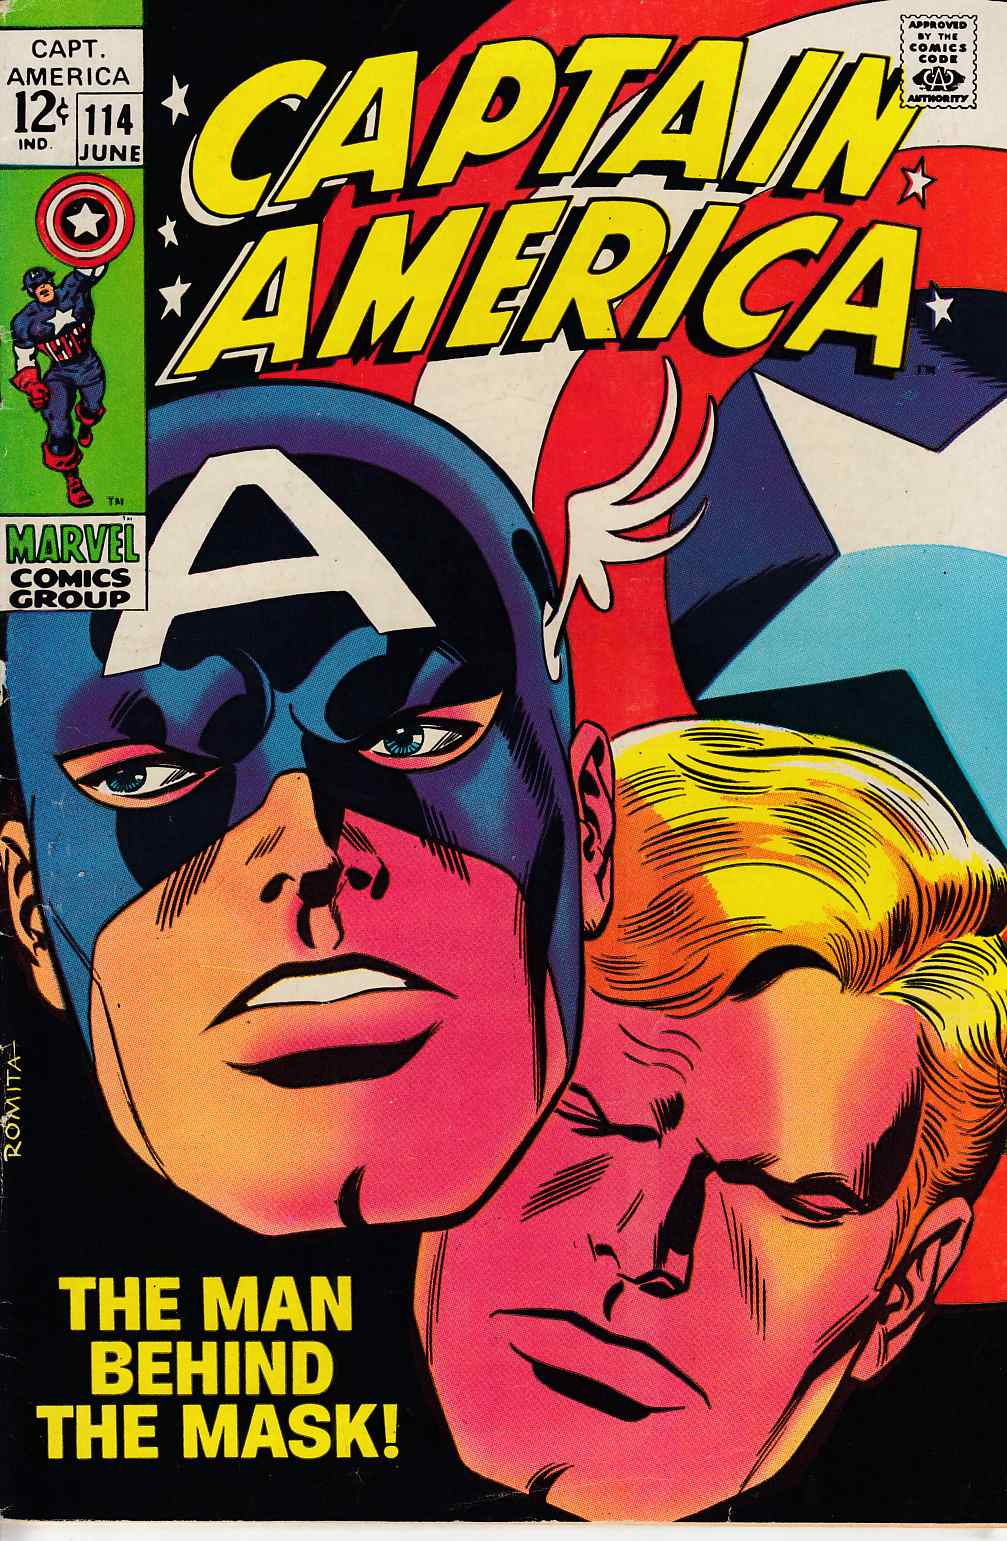 Captain America #114 Fine (6.0) [Marvel Comic] THUMBNAIL